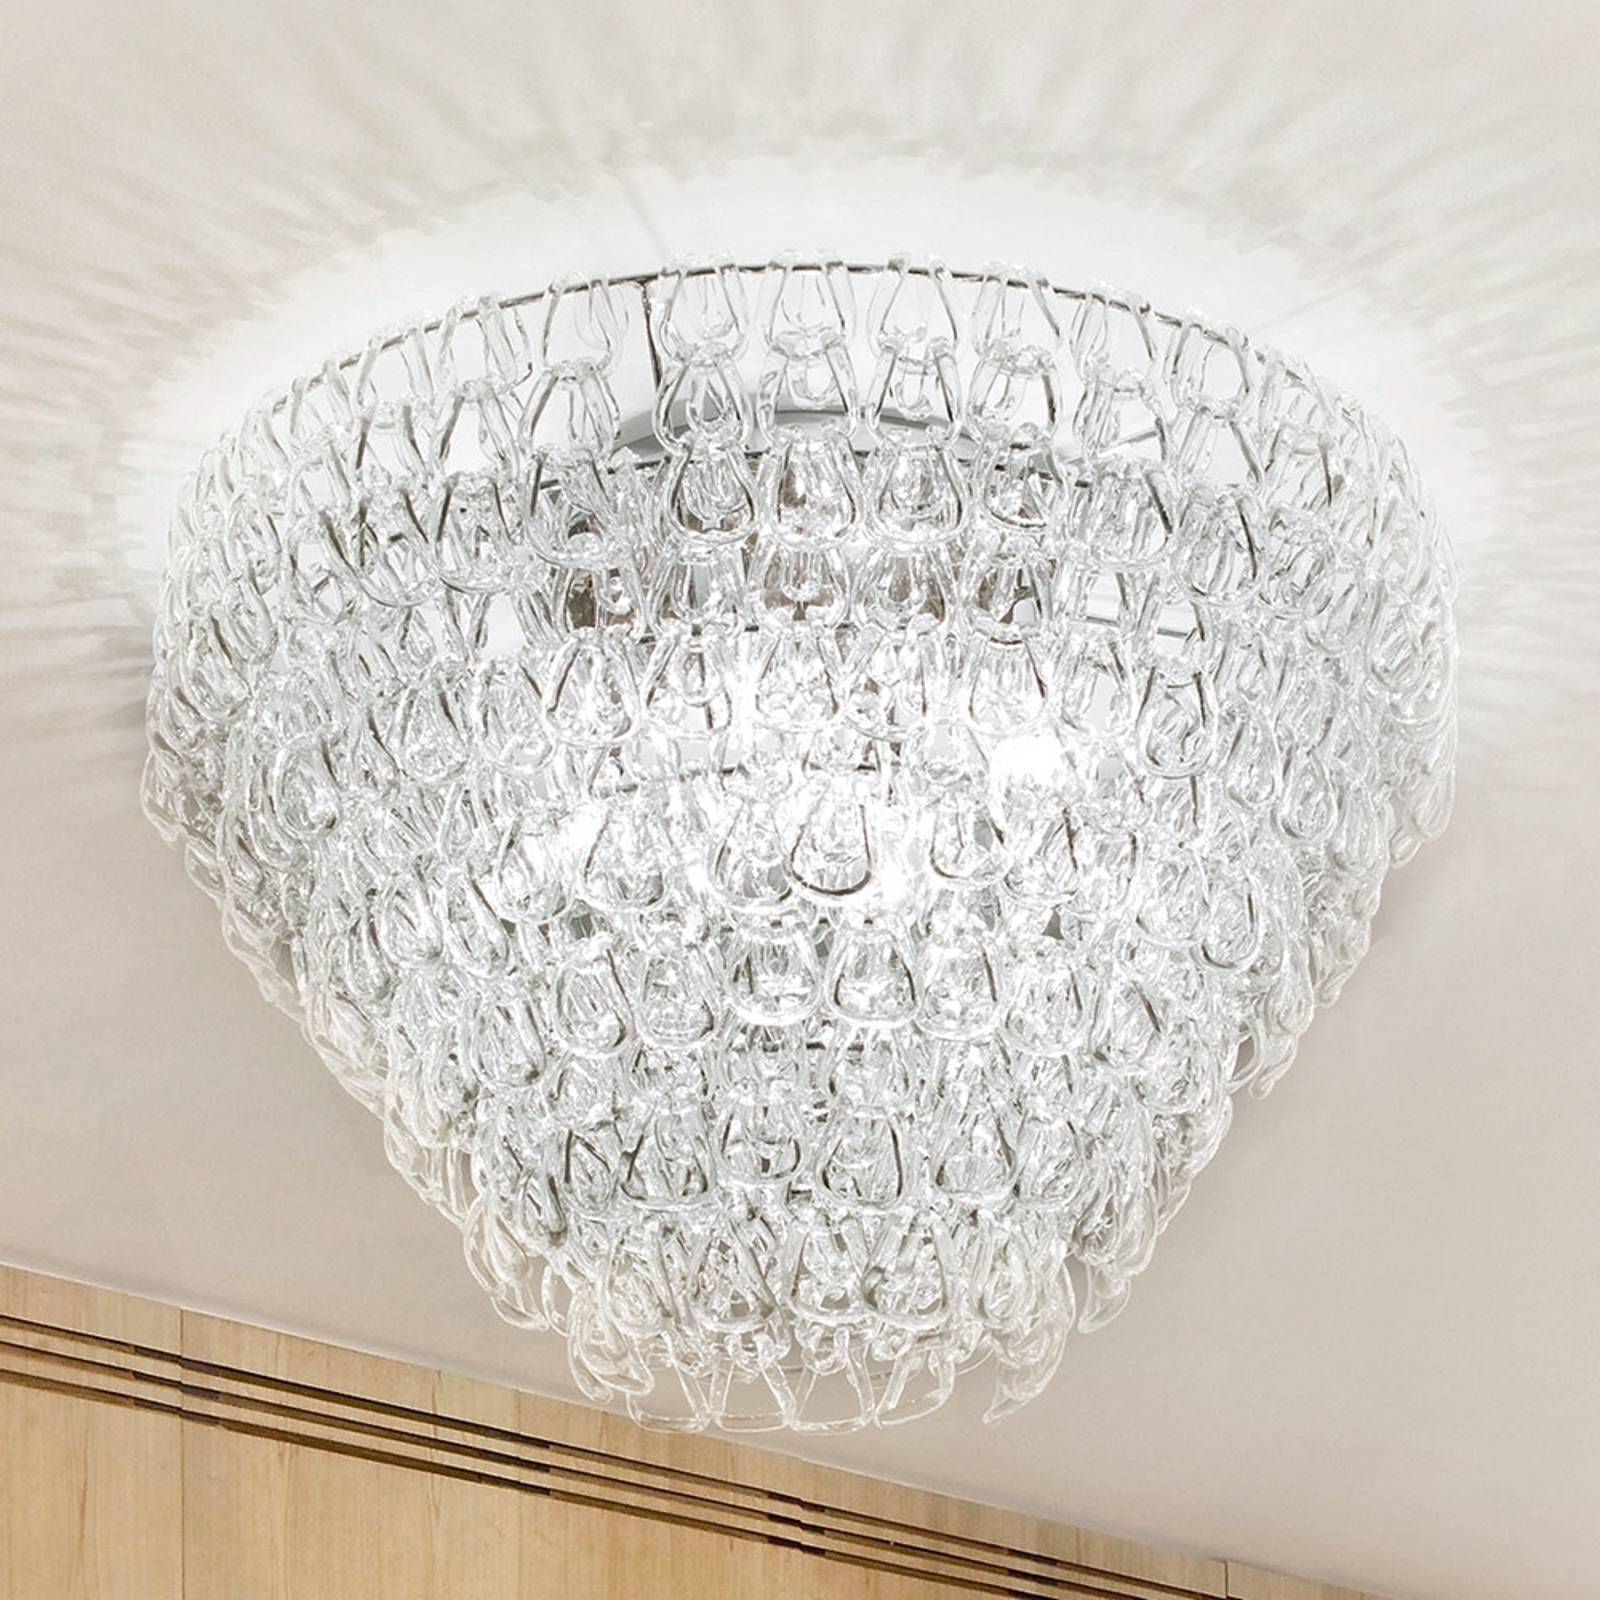 Luxurious ceiling light MINIGIOGALI from Vistosi